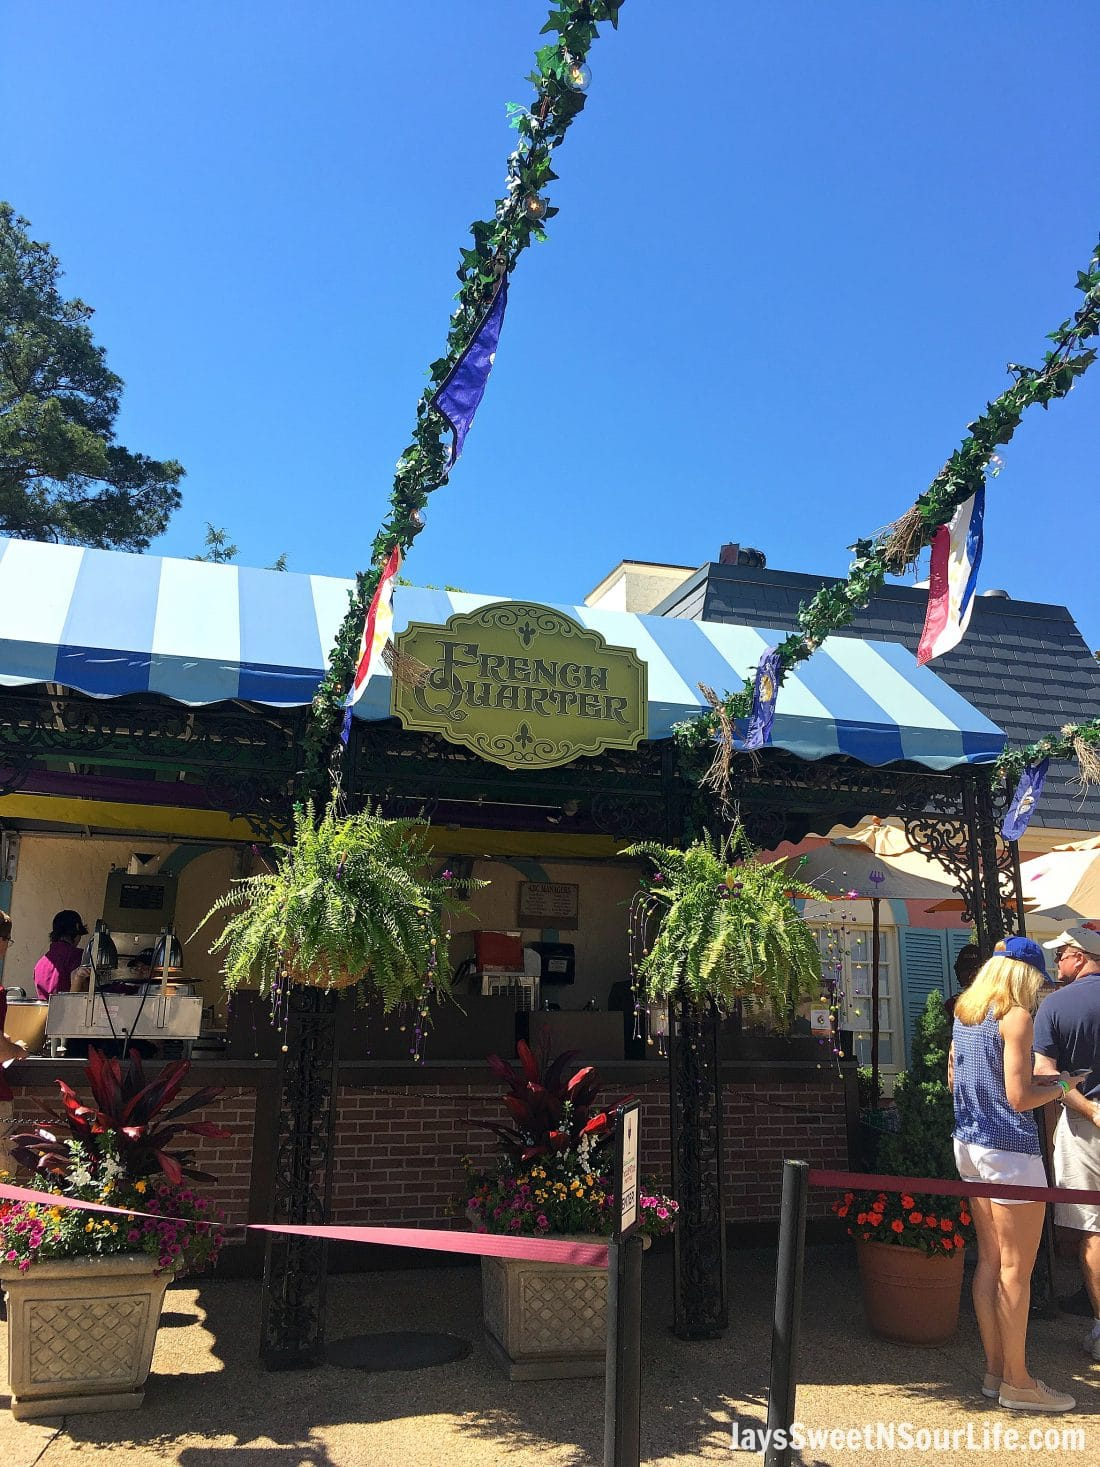 The Food and Wine Festival at Busch Gardens is back, sip and sample food from all over the world in one theme park. Find out what my top picks are from this year's 2017 Food and Wine Festival at Busch Gardens Williamsburg.